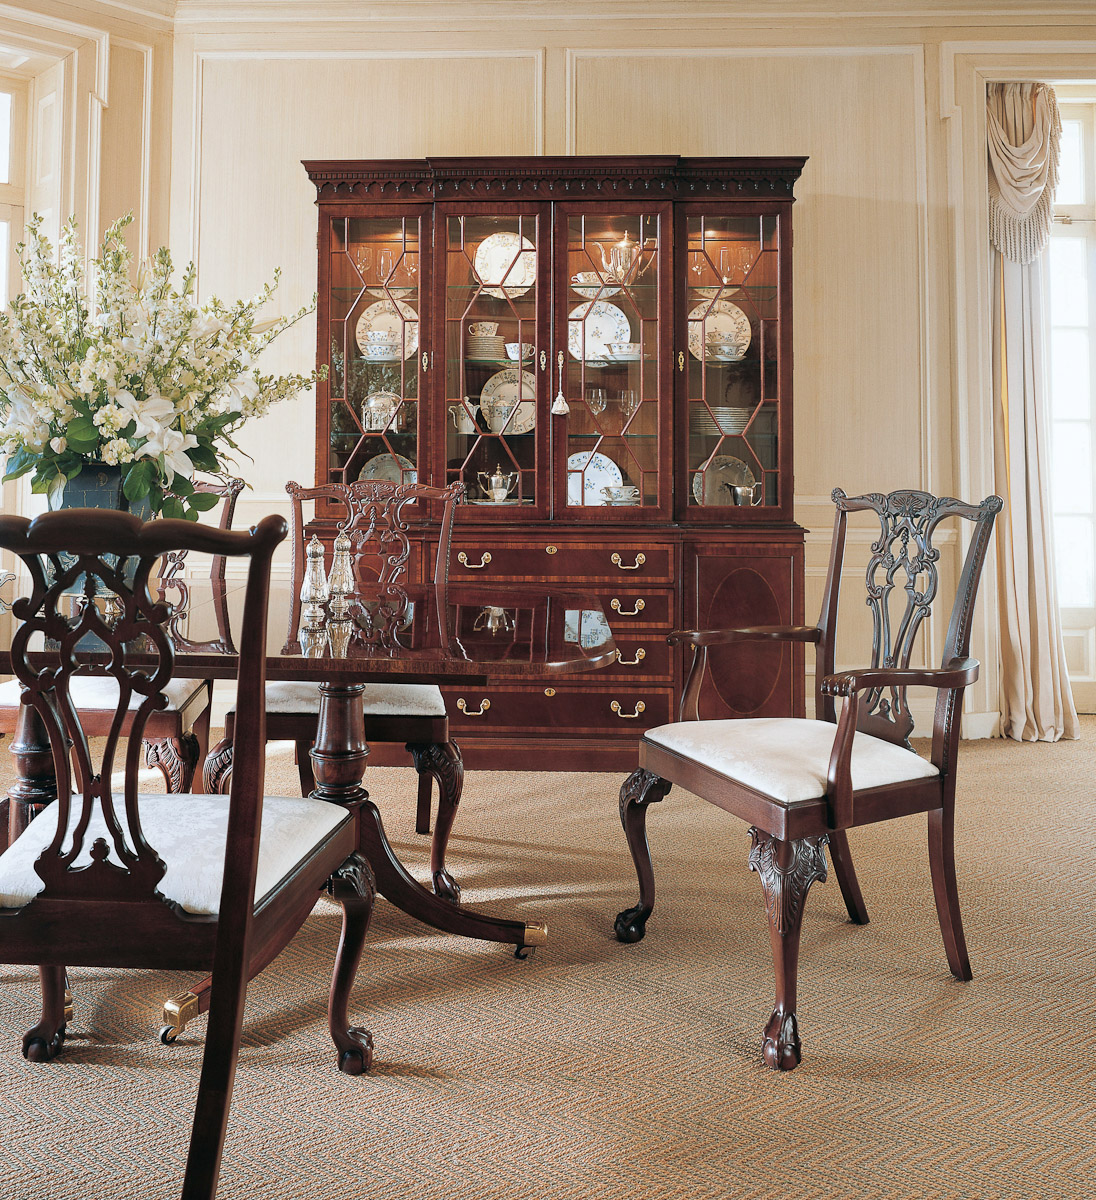 hickory chair dallas design center metal chairs online dining room furniture